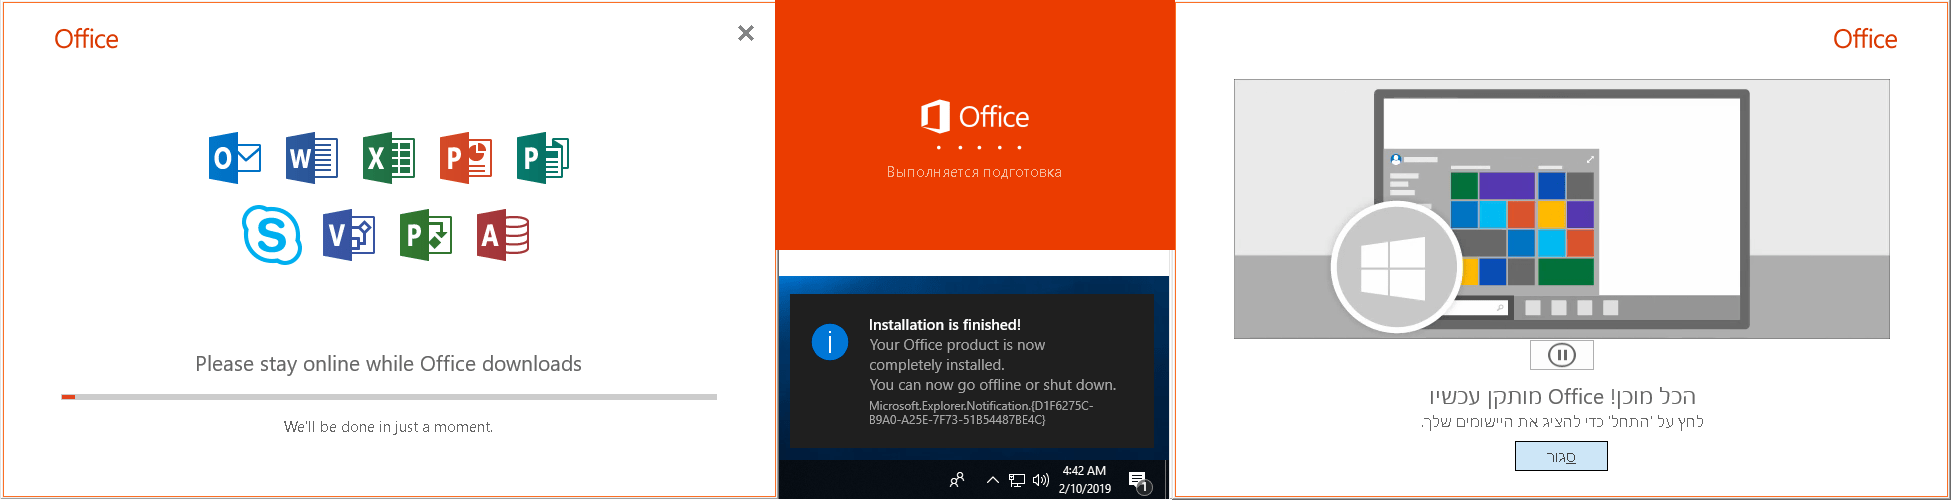 Visio Office Multilingual Office Understanding Office 2019 2016 Language